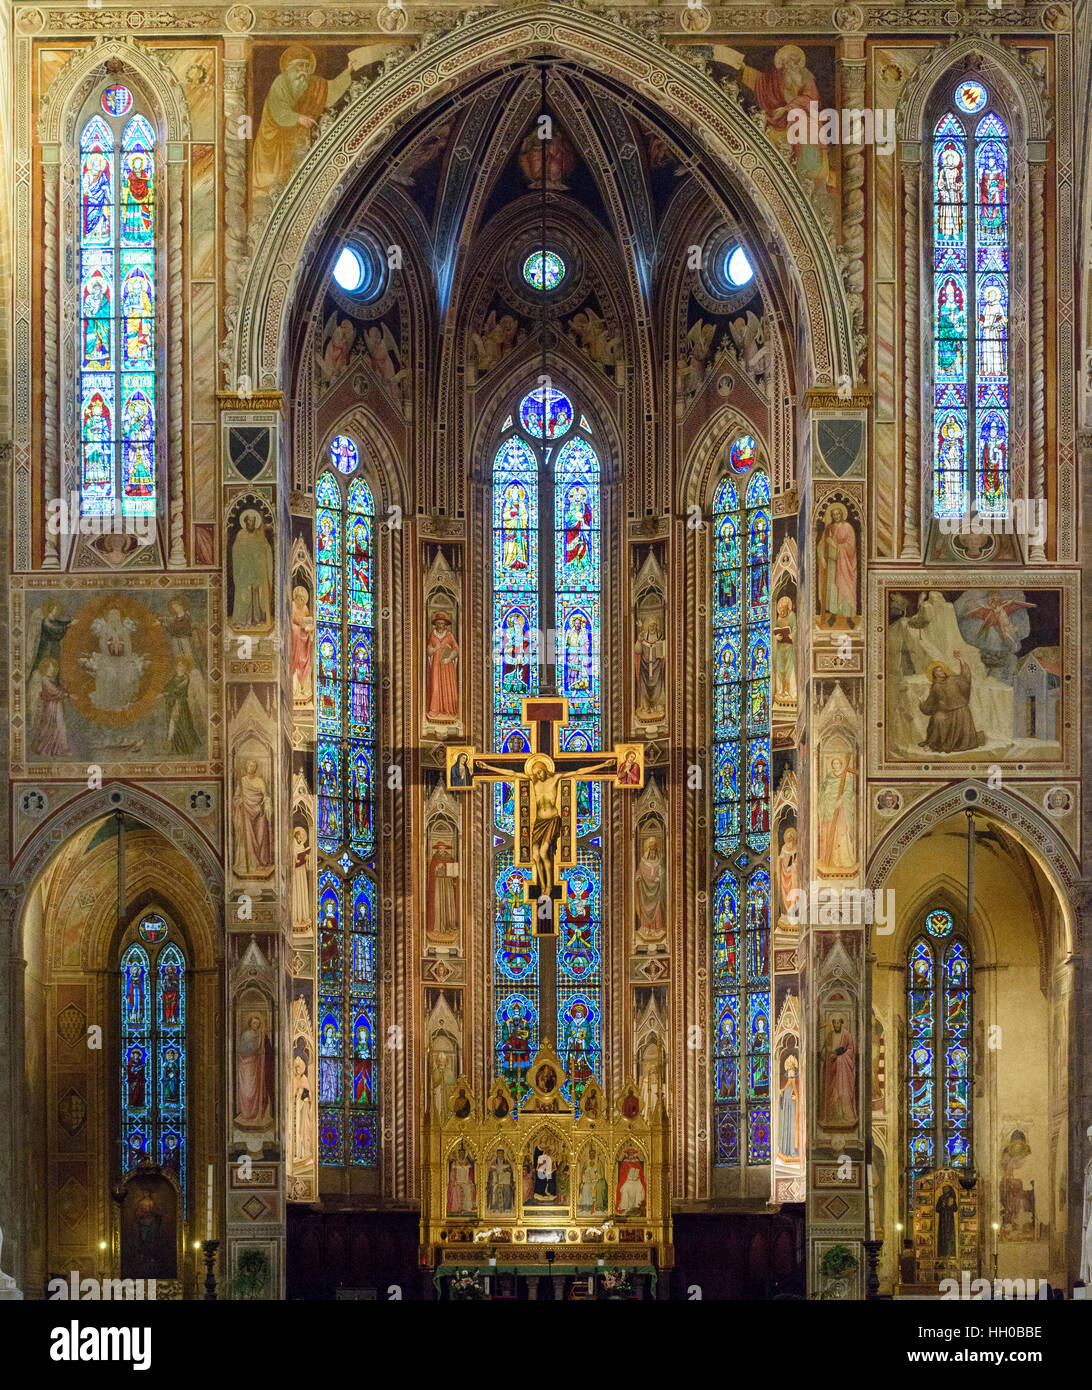 Florence. Italy. Basilica di Santa Croce, the Cappella Maggiore (Main choir chapel), decorated with frescoes by - Stock Image